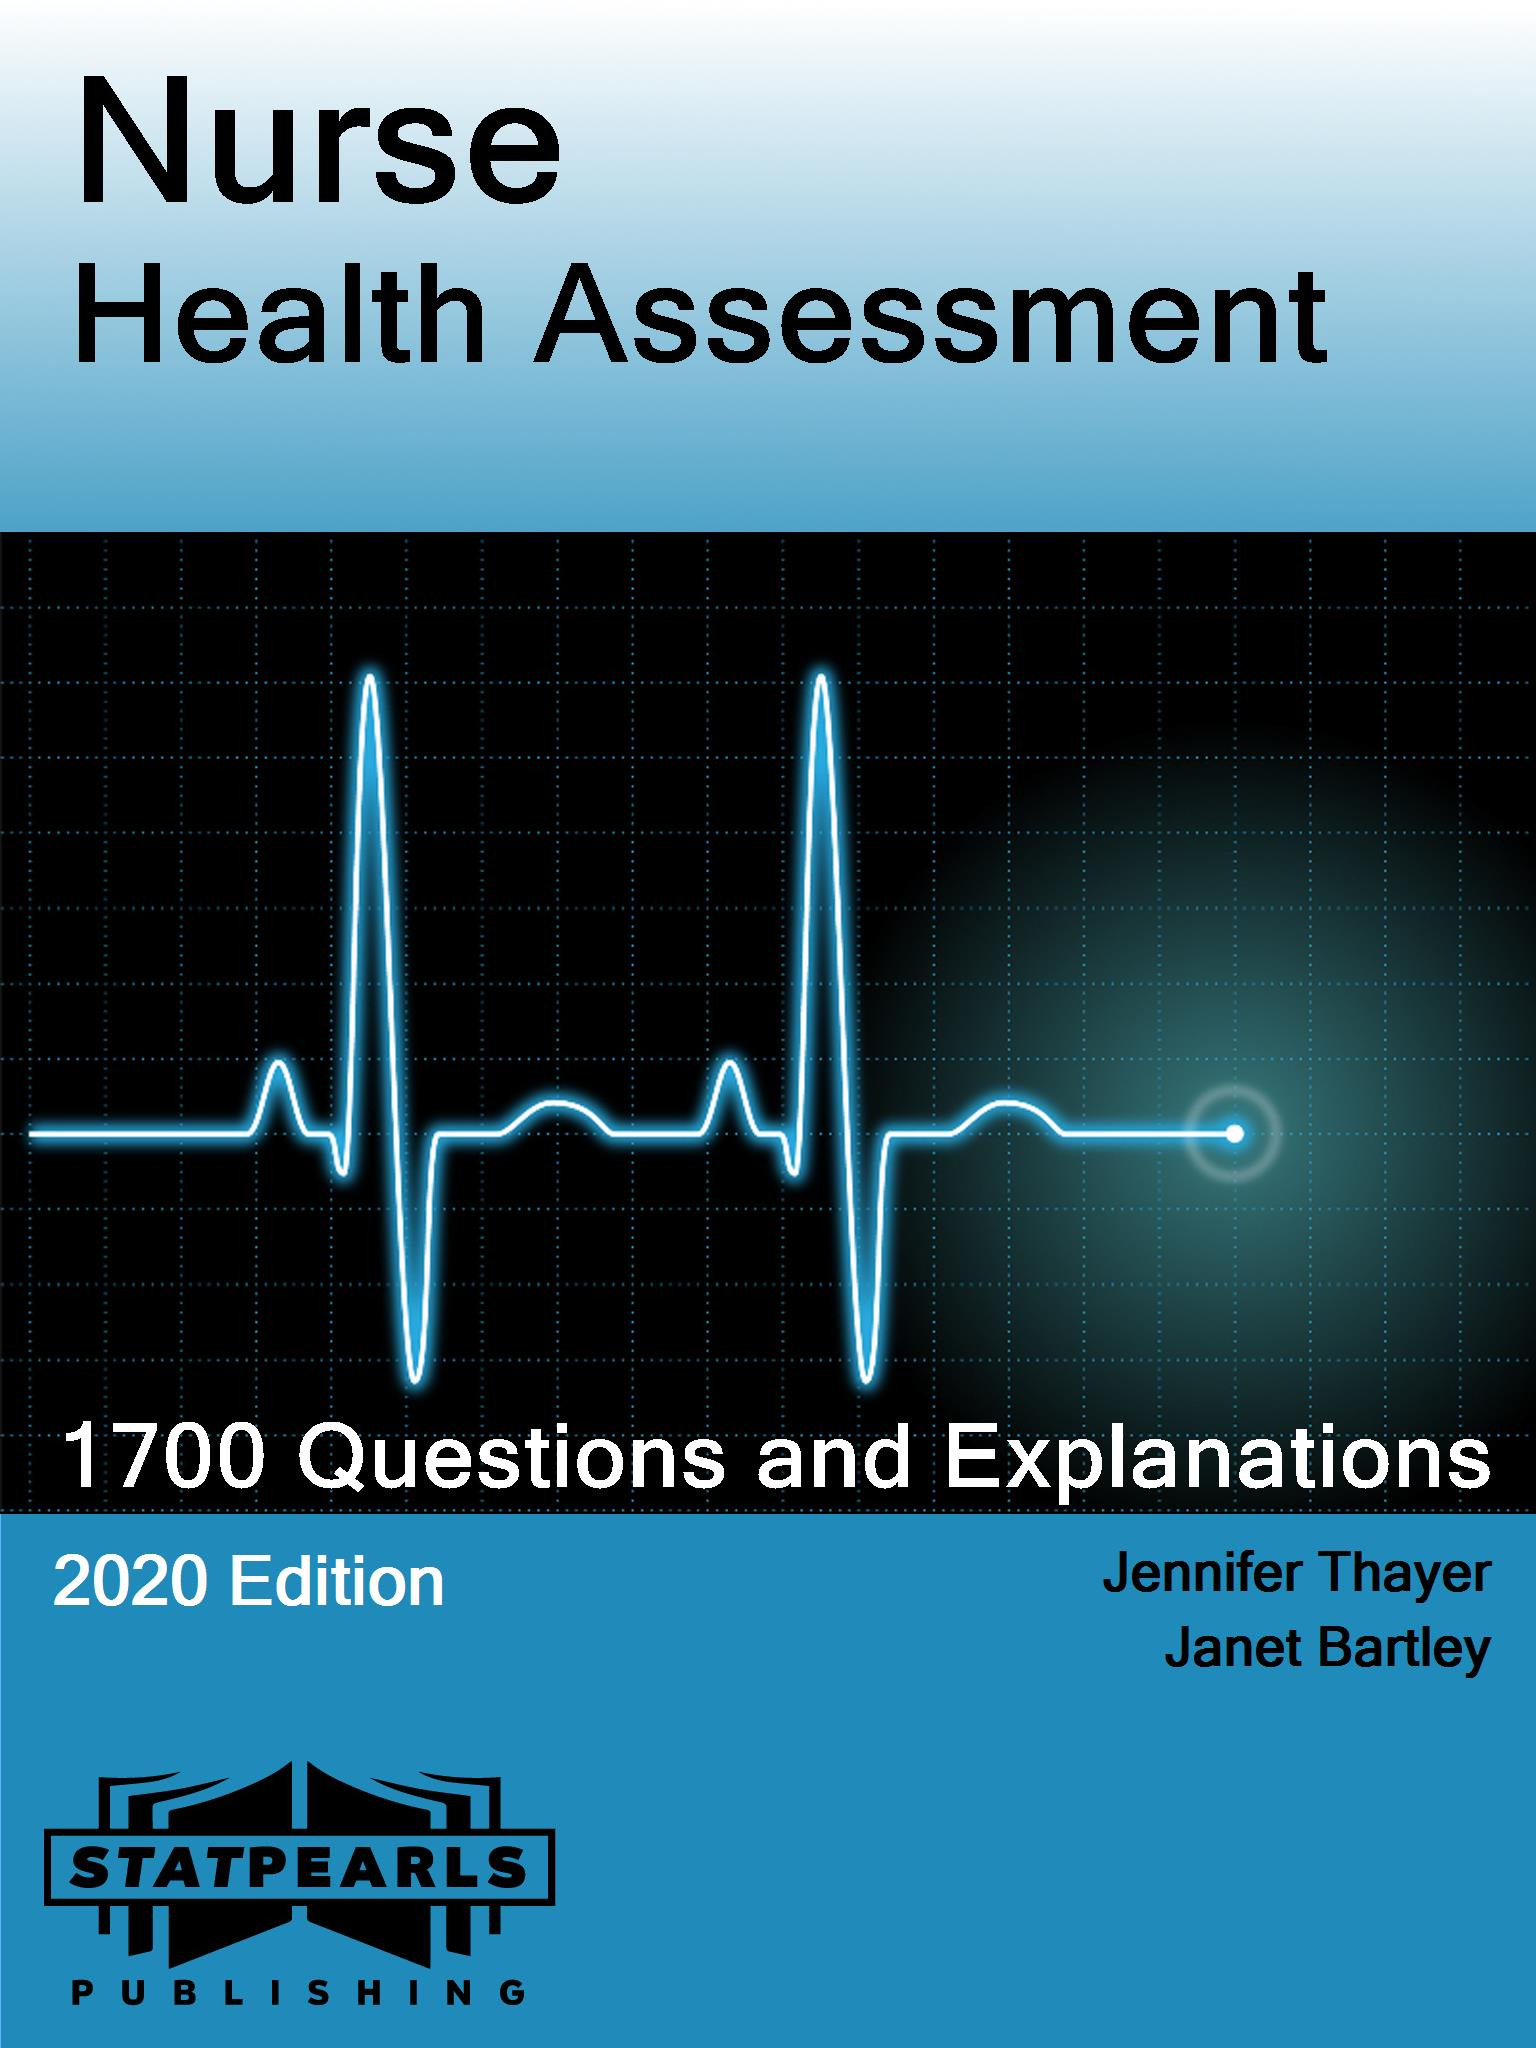 Nurse Health Assessment